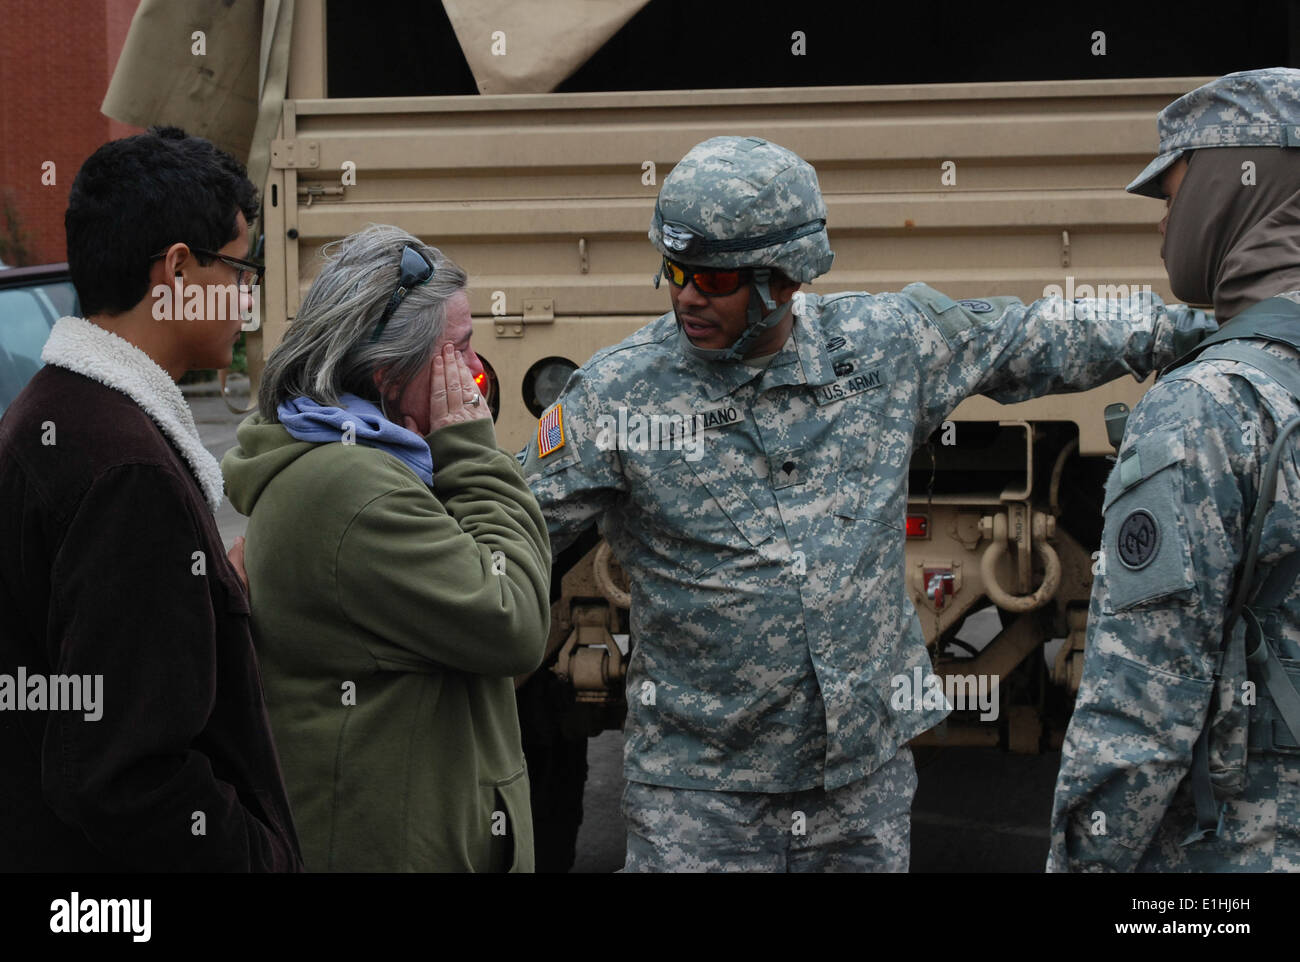 LONG BEACH, N.Y. – New York Army National Guard Spc. Francisco Justiniano relays information and help from Long Beach City Ha - Stock Image